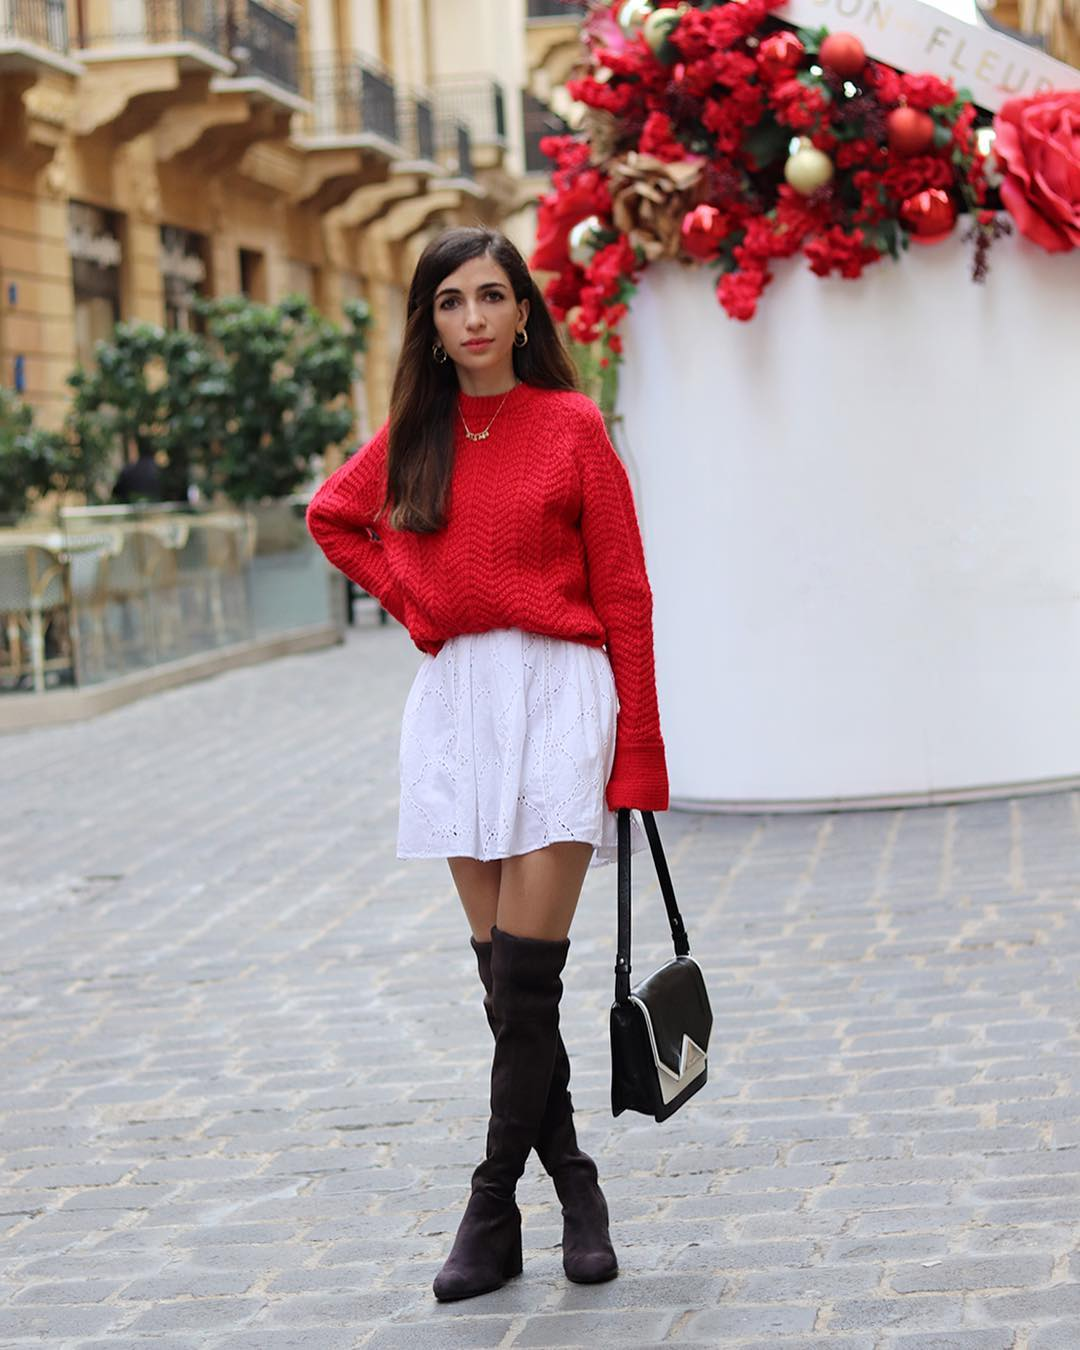 Can I Wear Red Sweater Over White Shirtdress With Black OTK Boots 2019